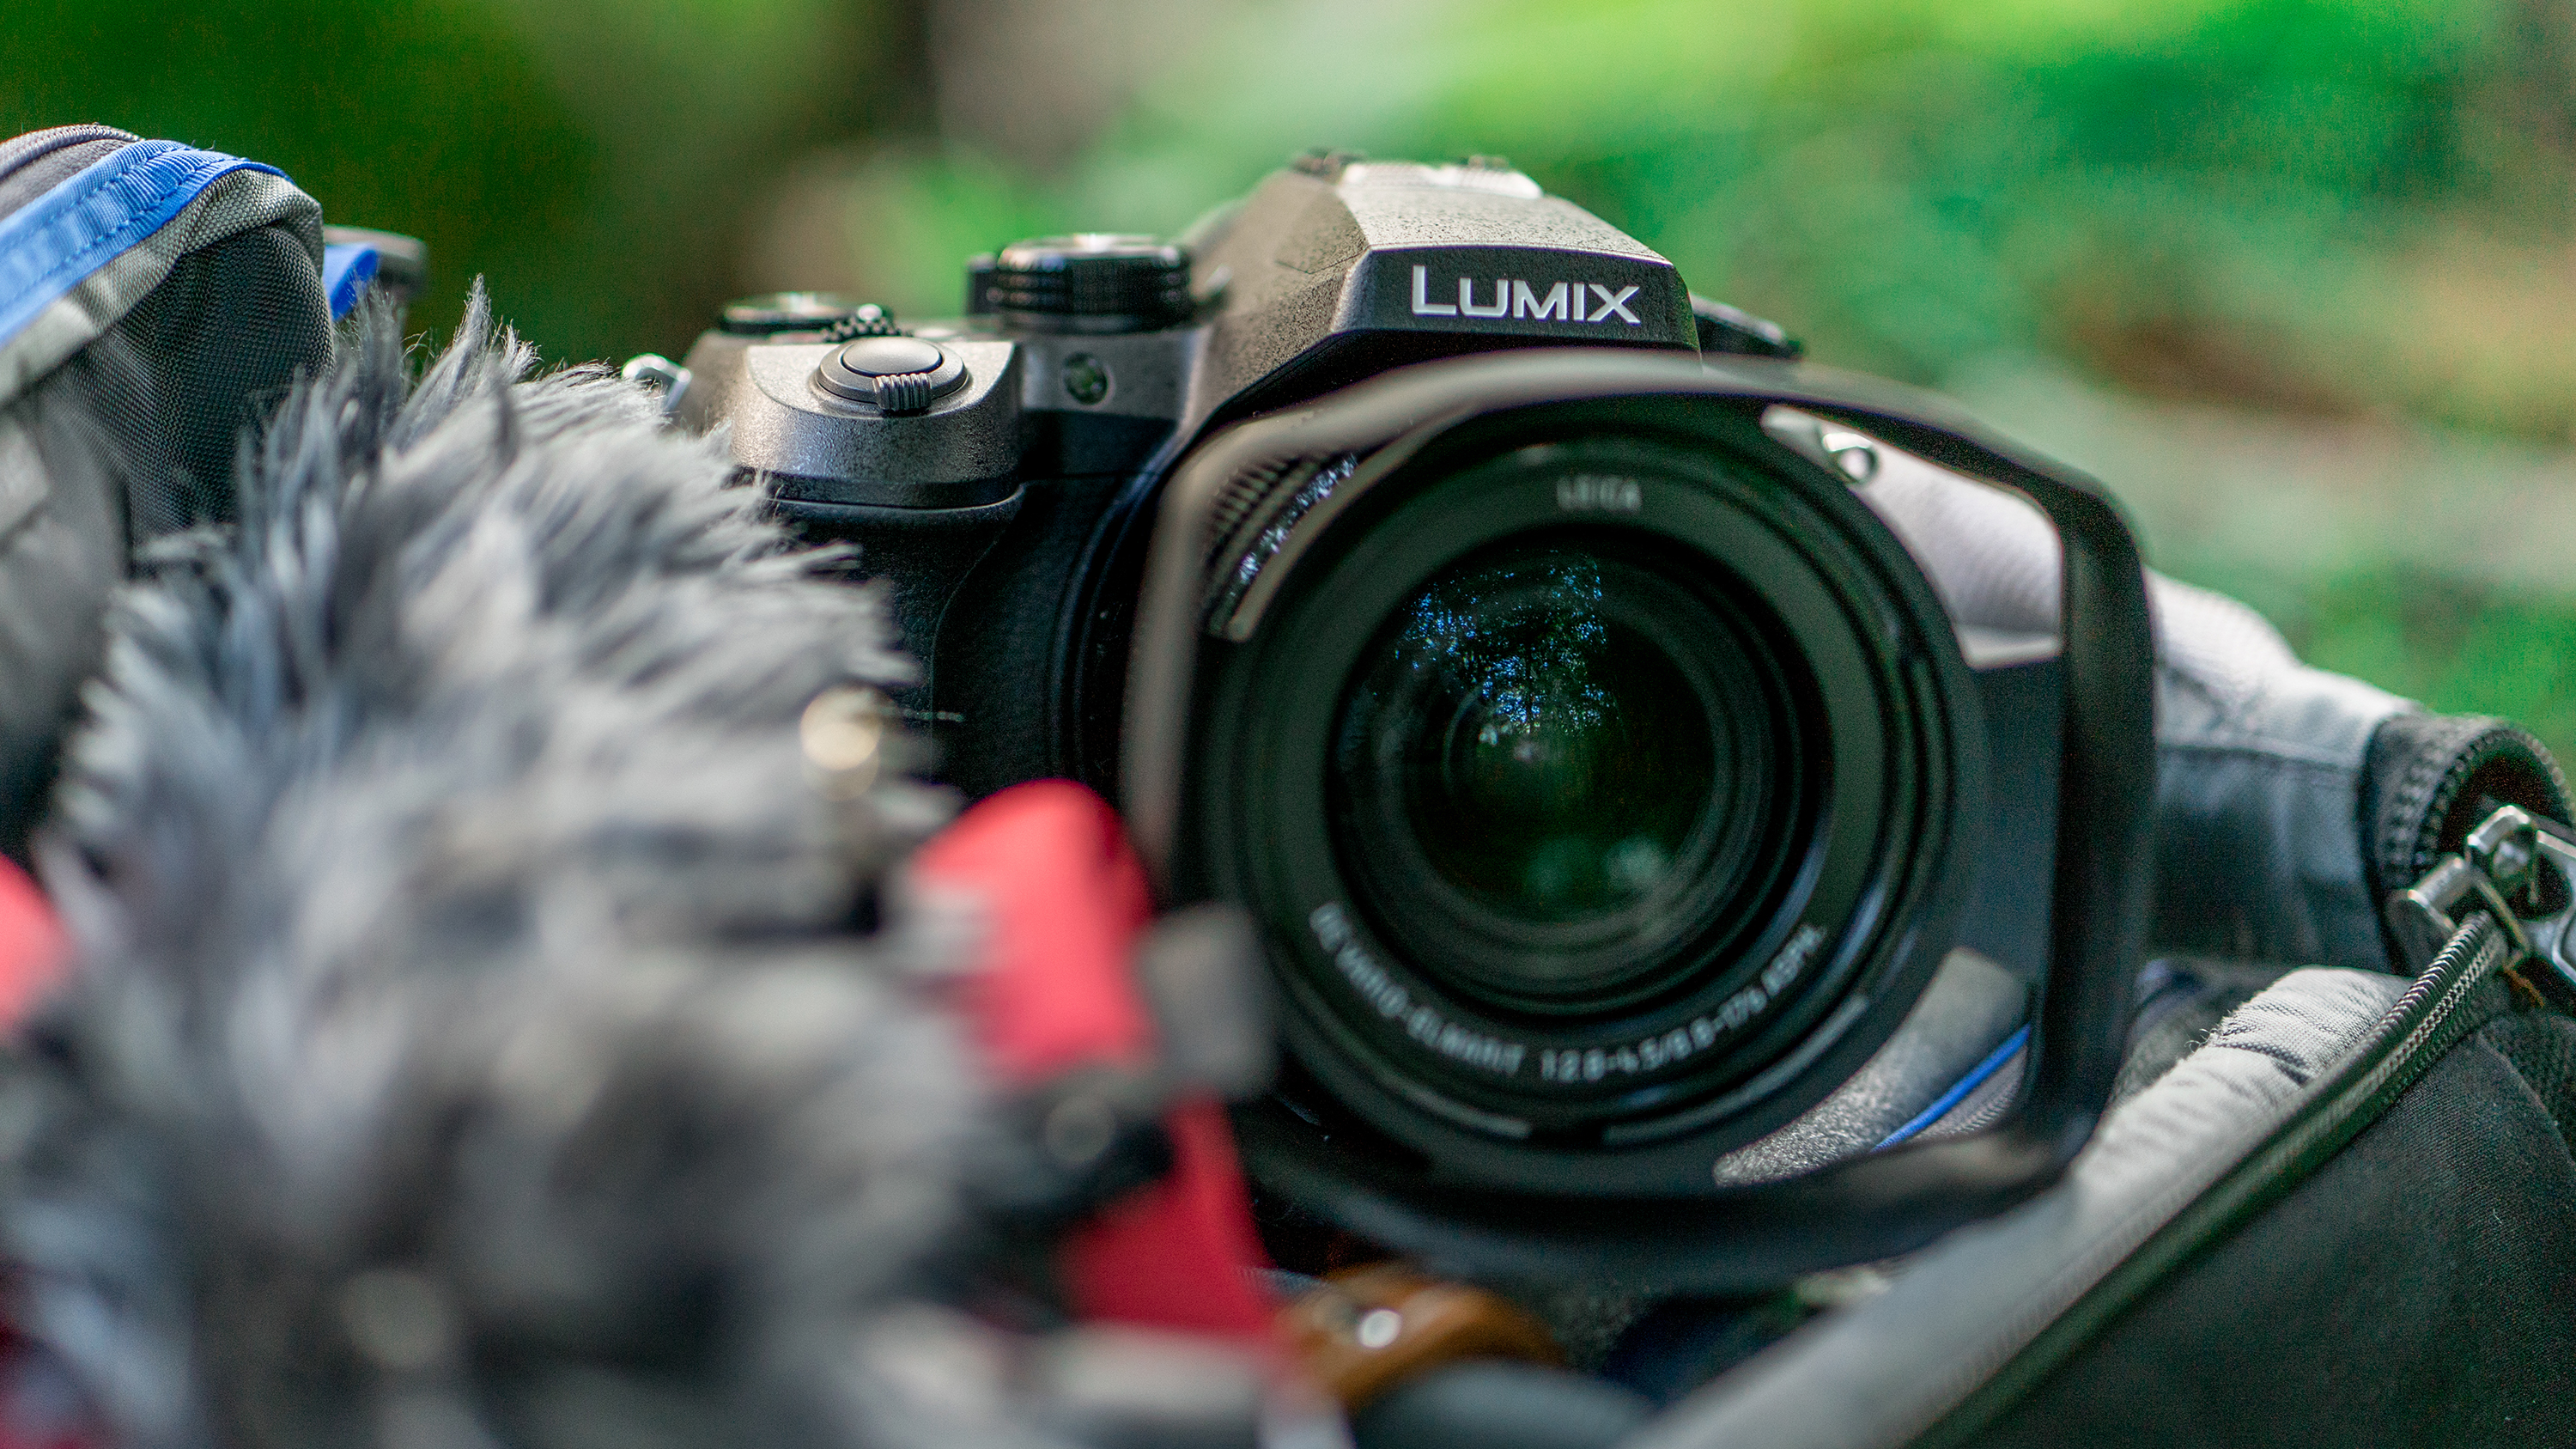 Best compact camera: Panasonic Lumix FZ2000